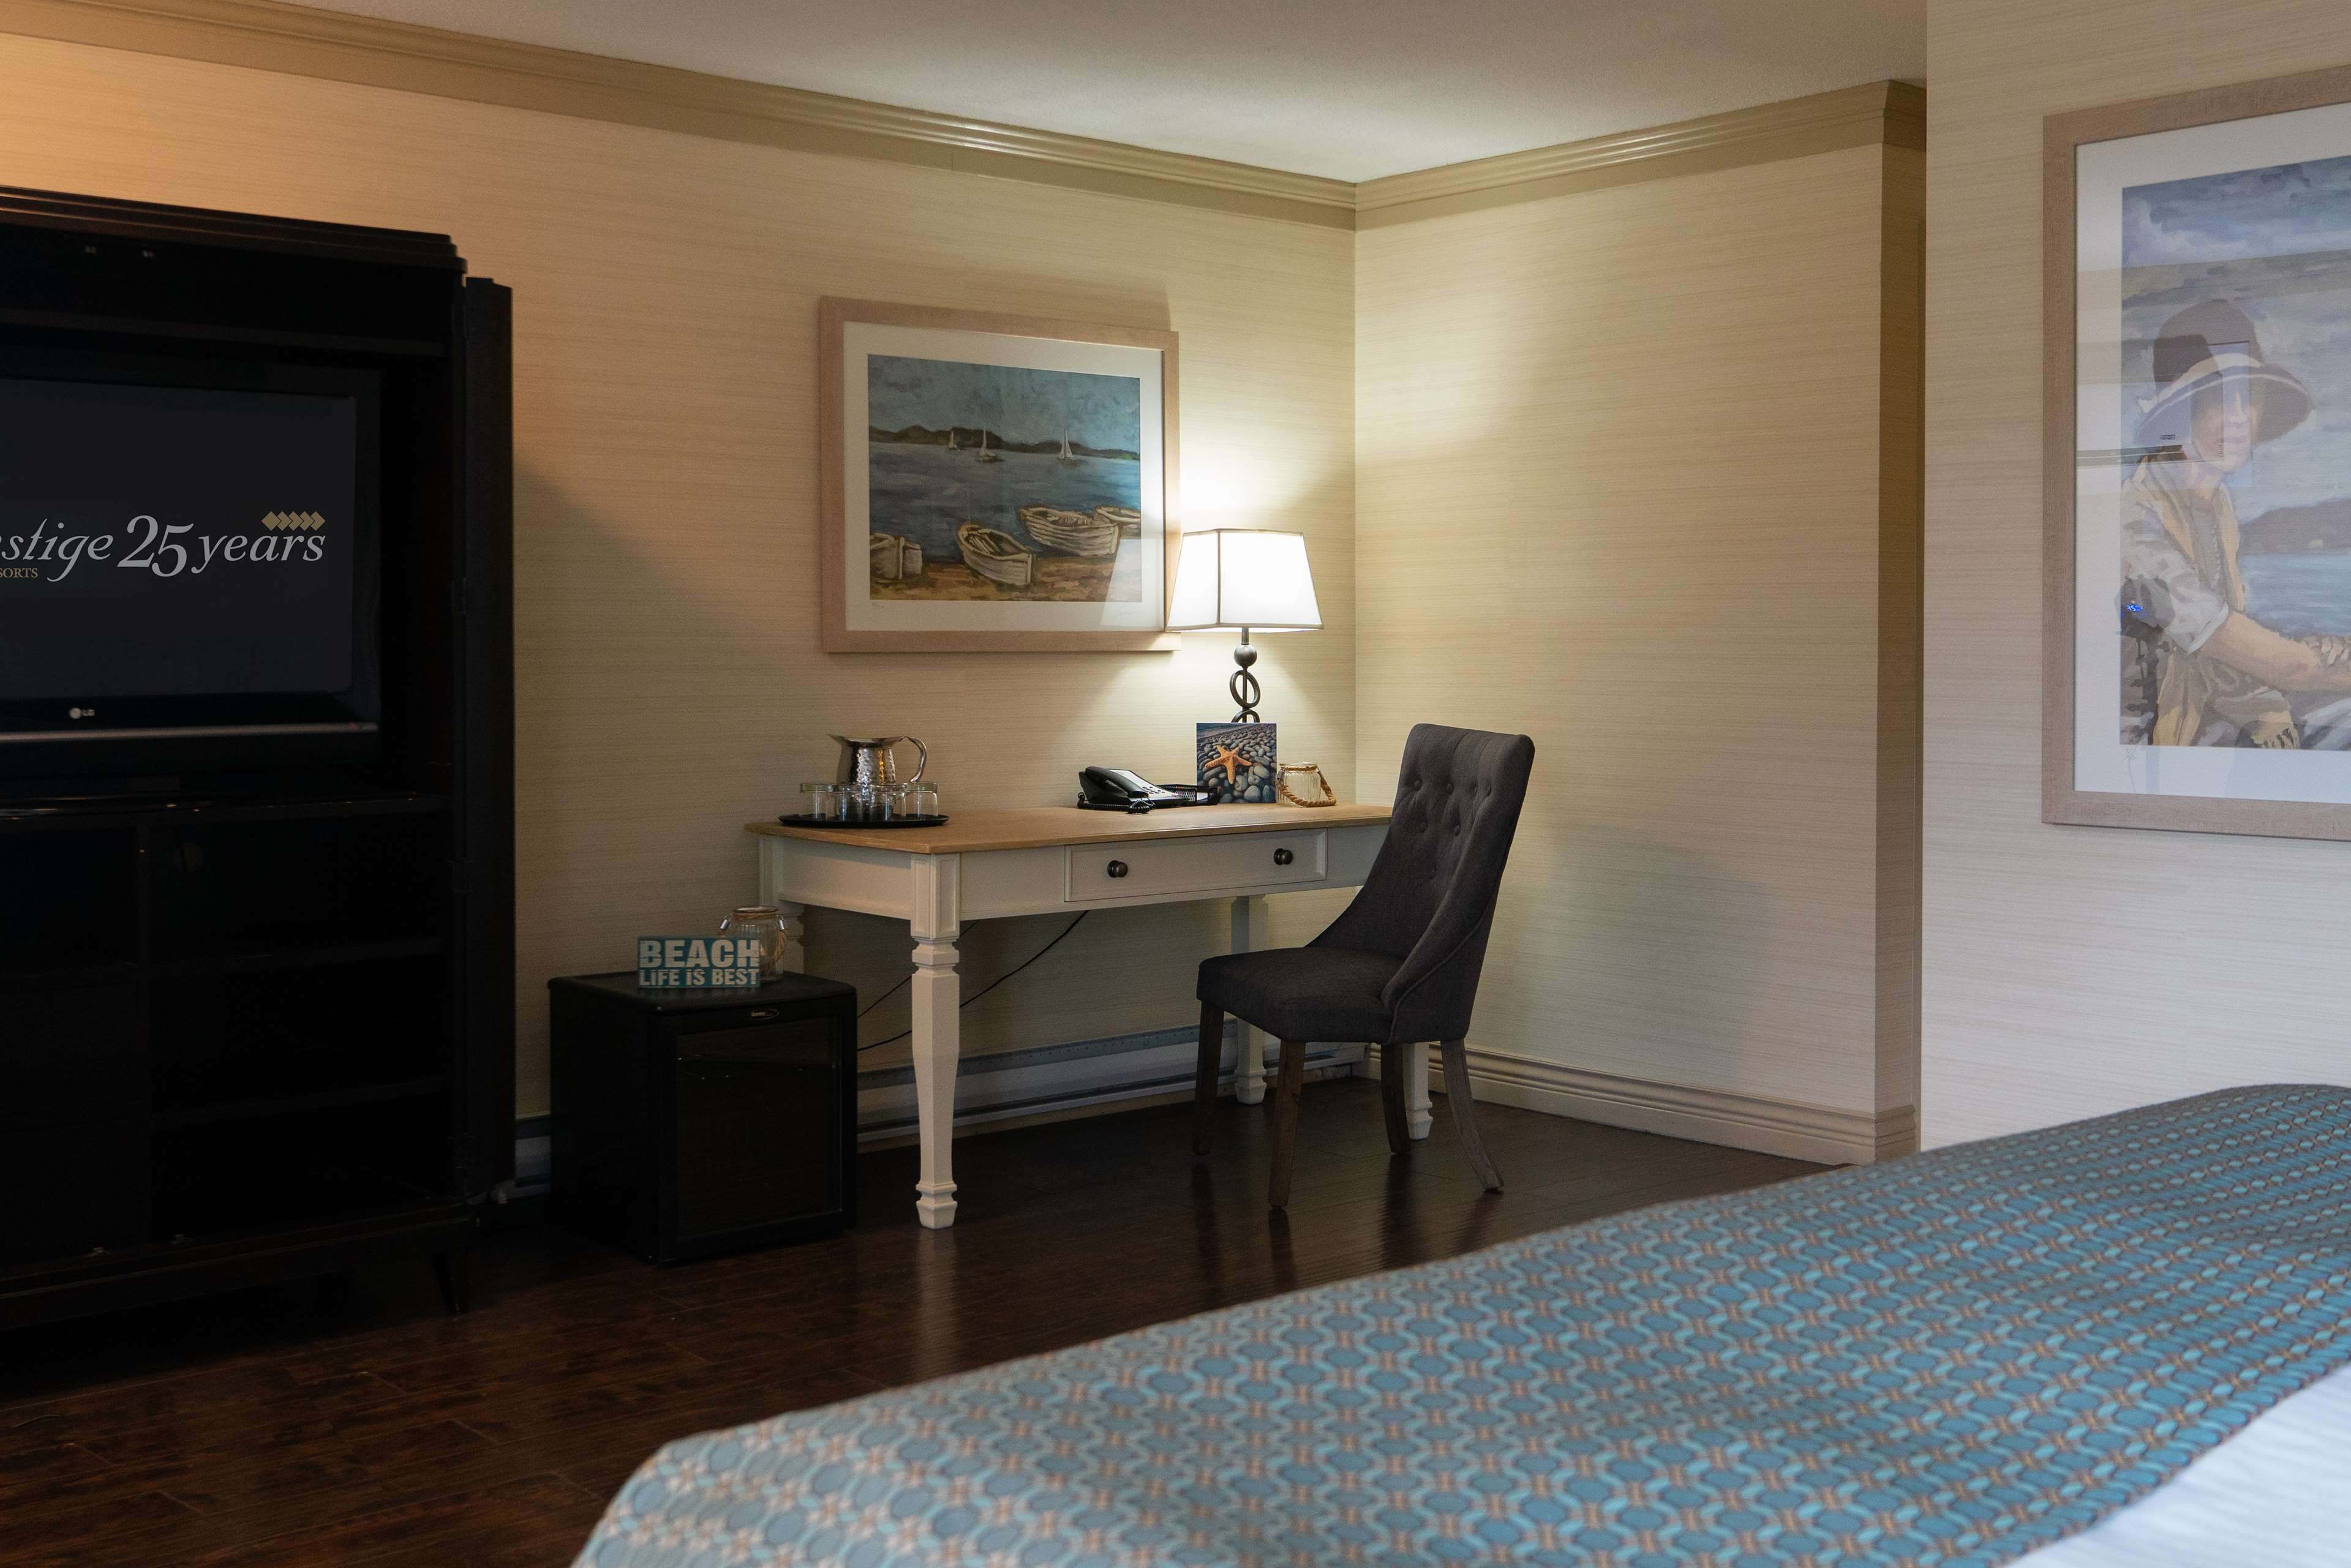 Prestige Beach House, BW Premier Collection in Kelowna: Corporate King Guest Room